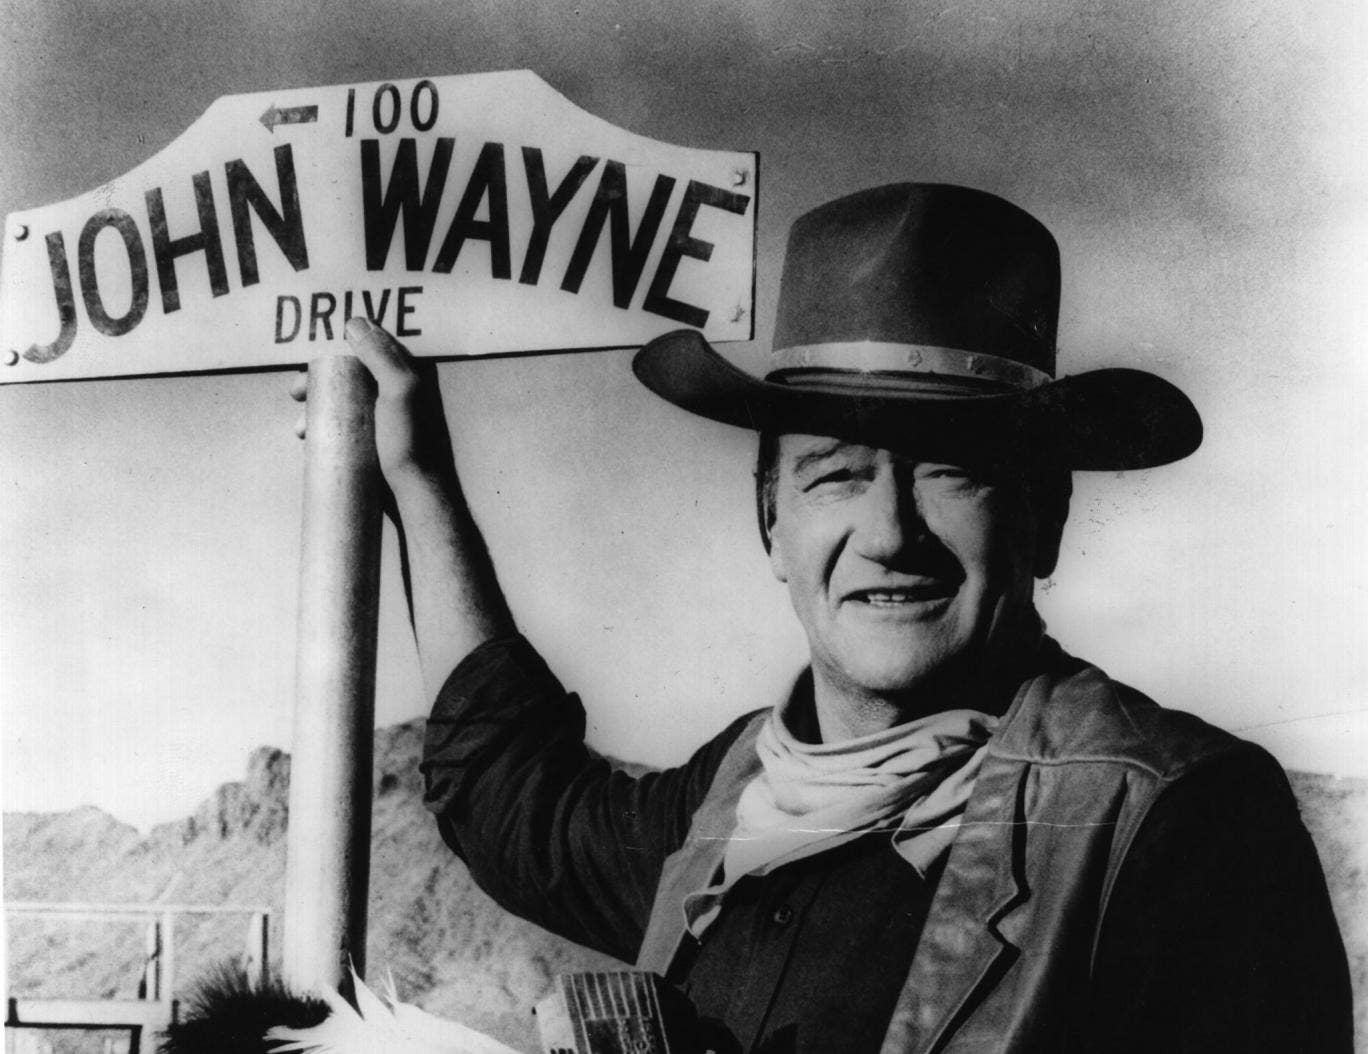 The late actor John Wayne, who starred in several Andrew V McLaglen films, with his sign in 1966